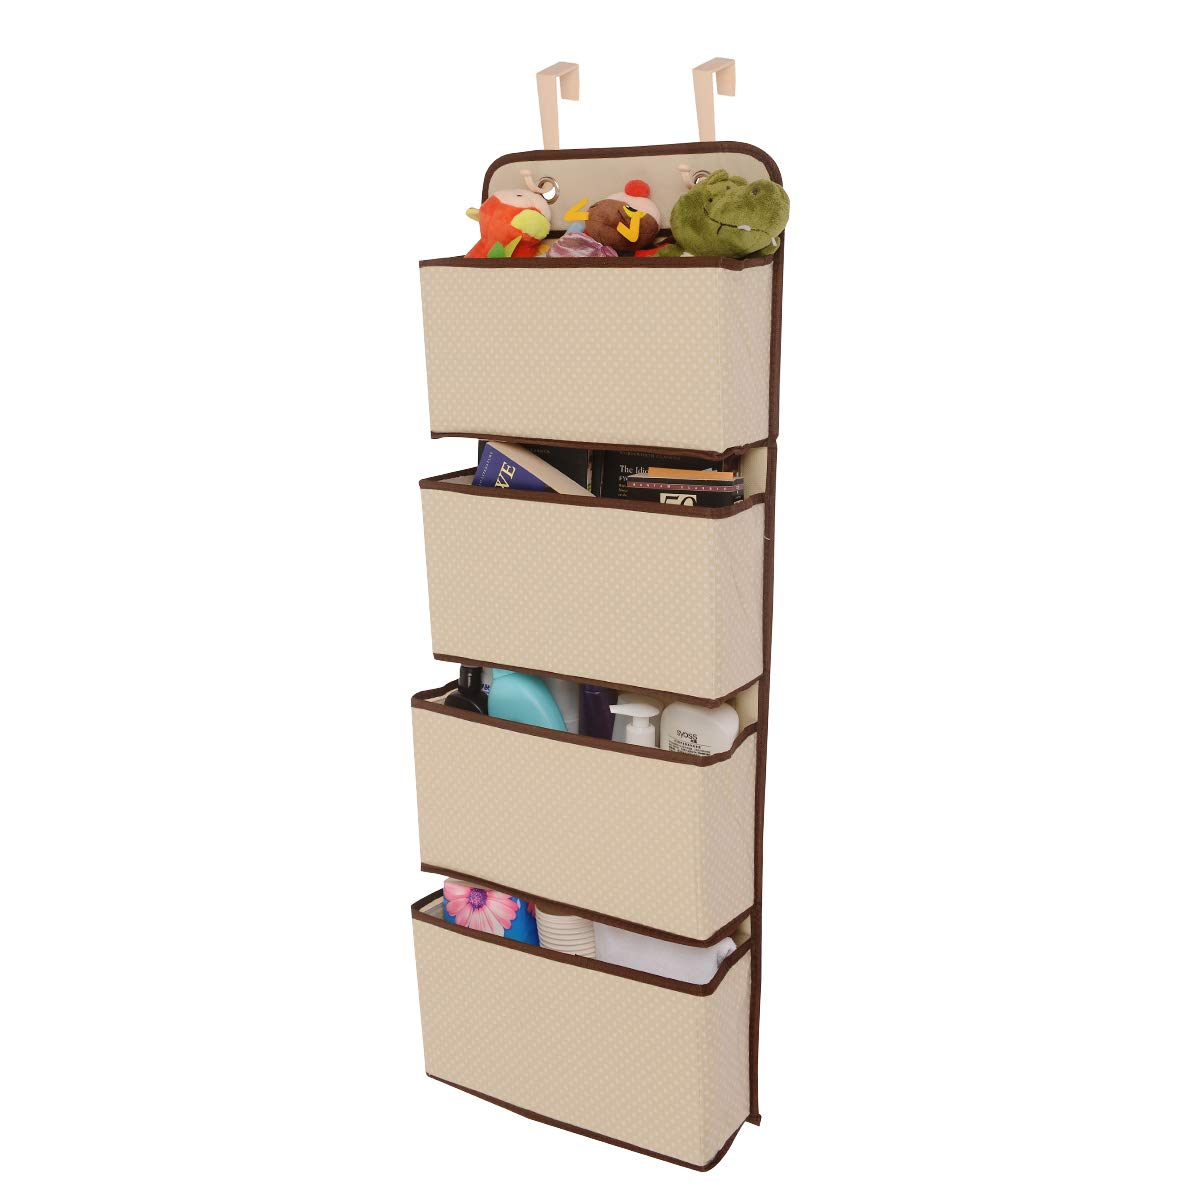 NUOKING Over Door Hanging Organizer,Baby Closet Organizer,Hanging Closet Organizer with 4 Large Pockets, Storable Closet,Storage (Beige Color) by NUOKING